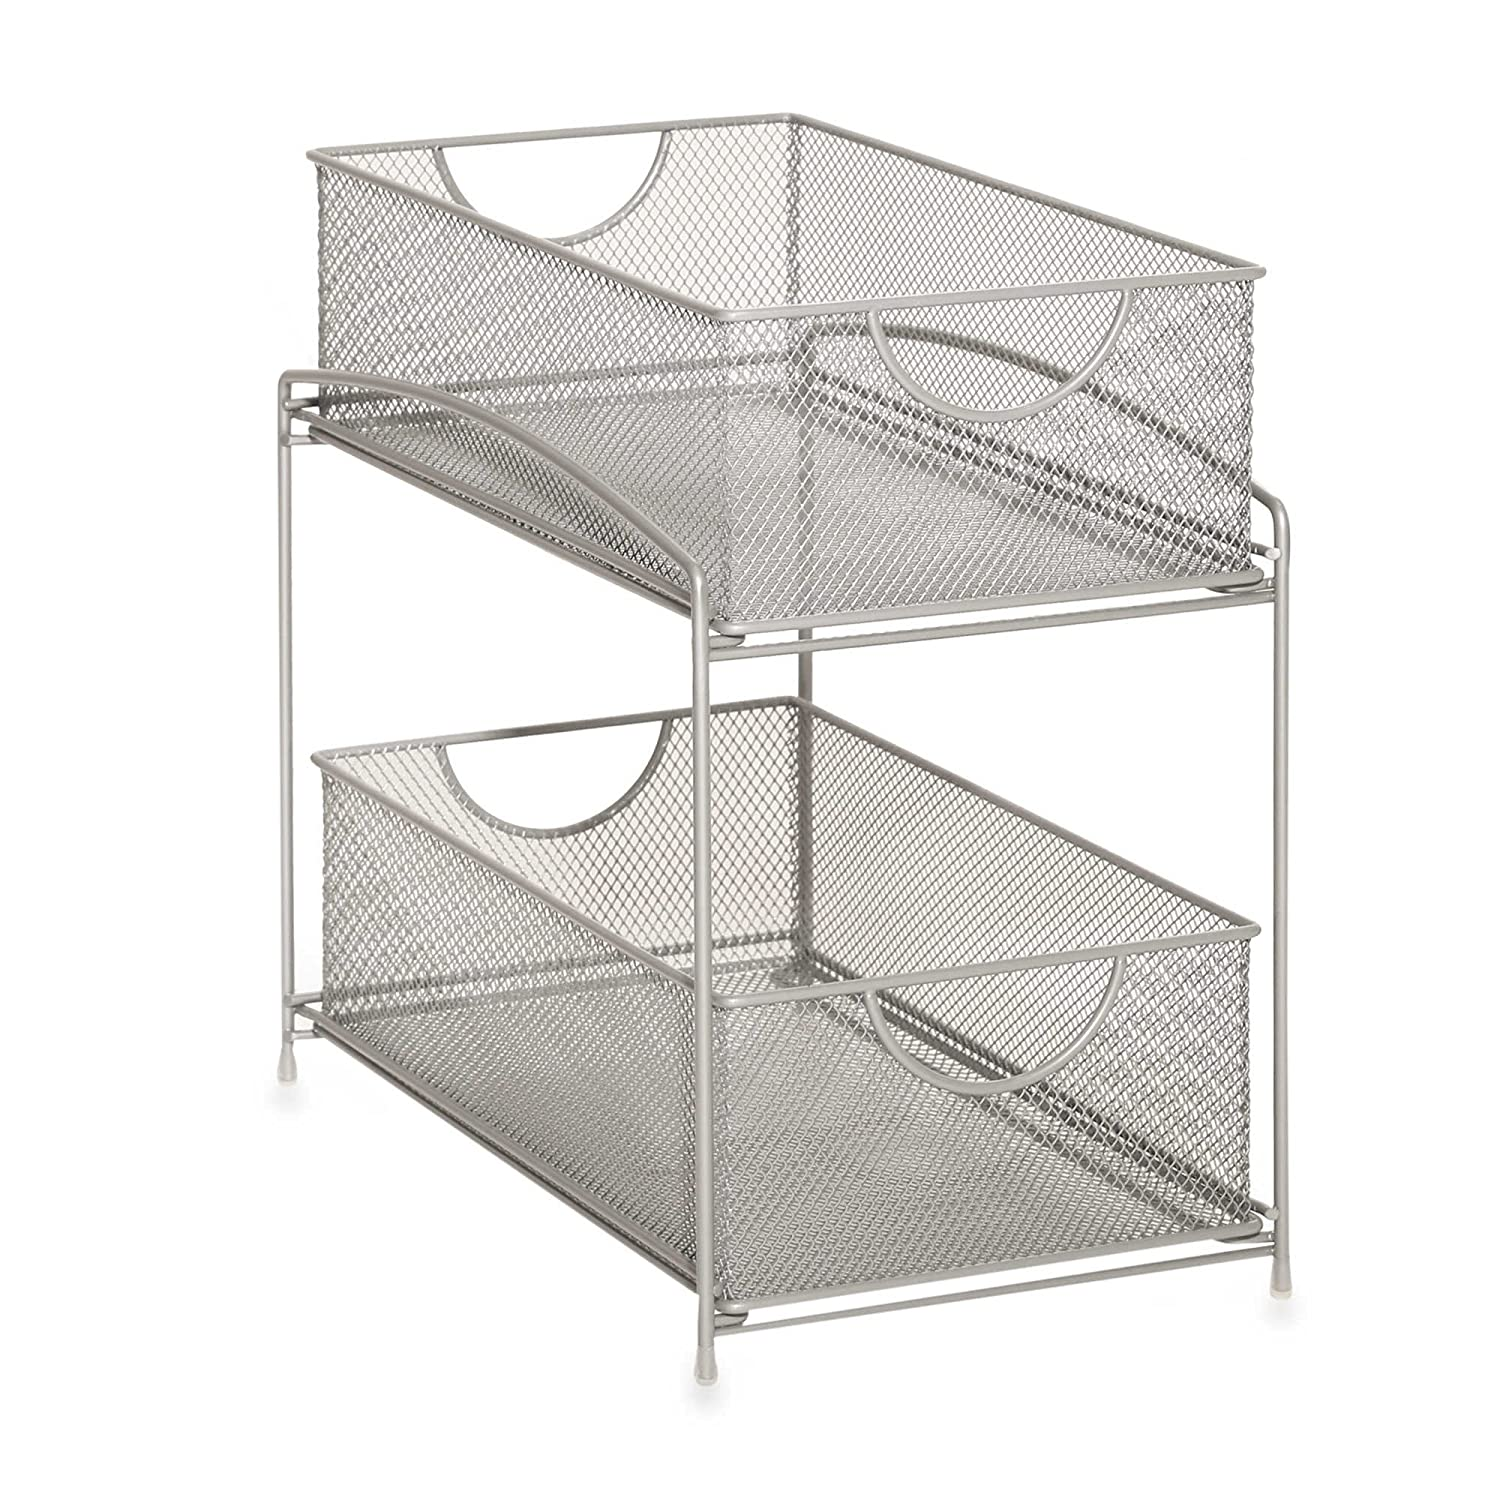 Uncategorized Sliding Basket Organizer amazon com org 2 tier mesh double sliding cabinet basket in silver kitchen dining